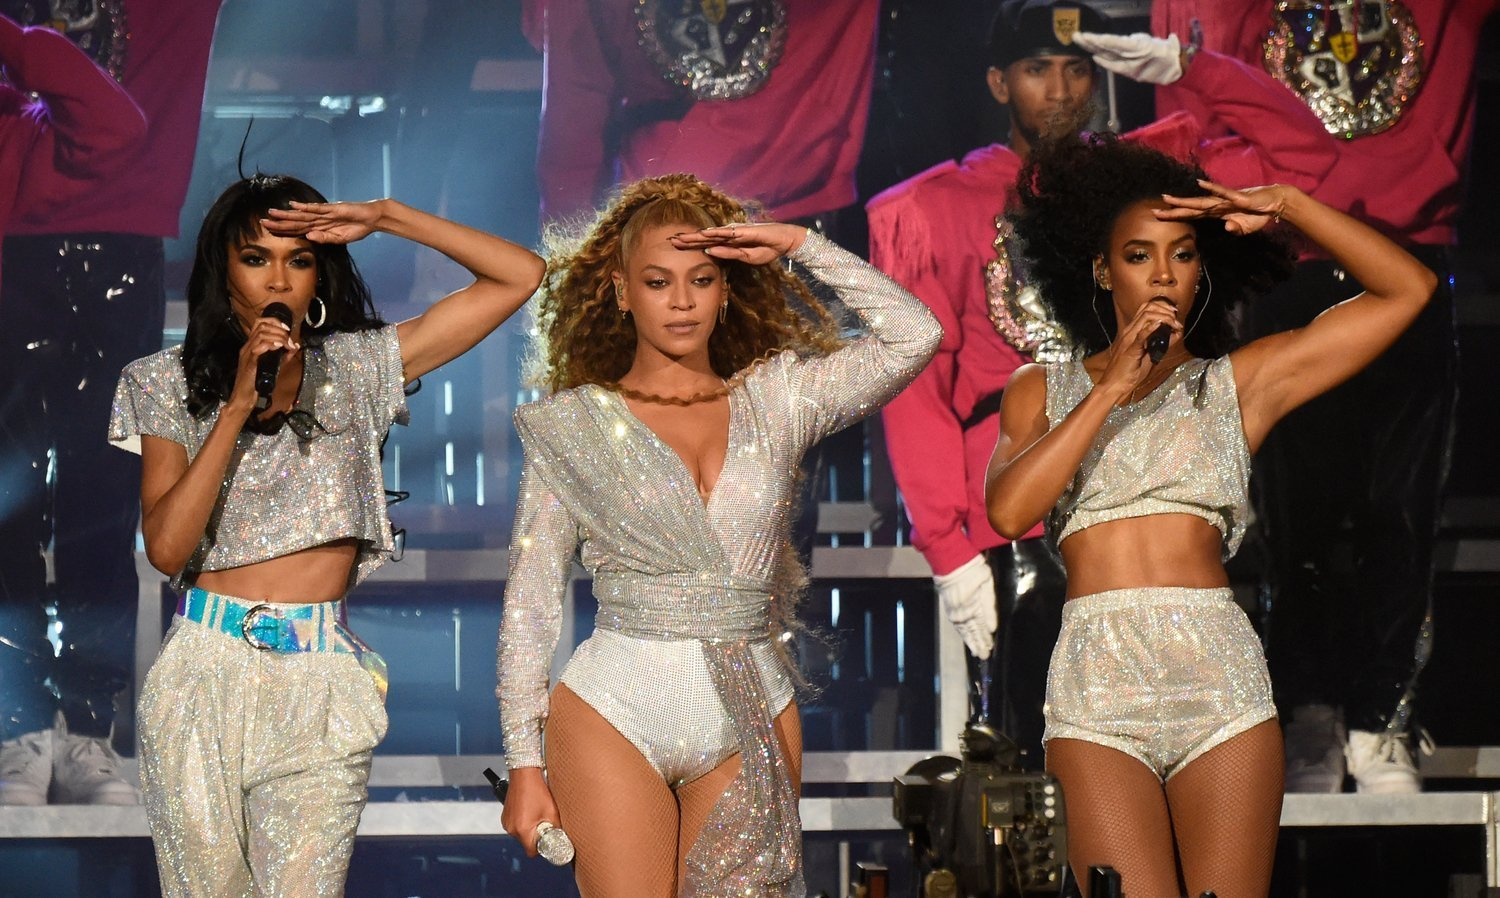 Destiny's Child trio, Michelle Williams, Beyonce Knowles and Kelly Rowland reunite for a performance during Beyonce's 2018 Coachella gig. | Photo: Getty Images